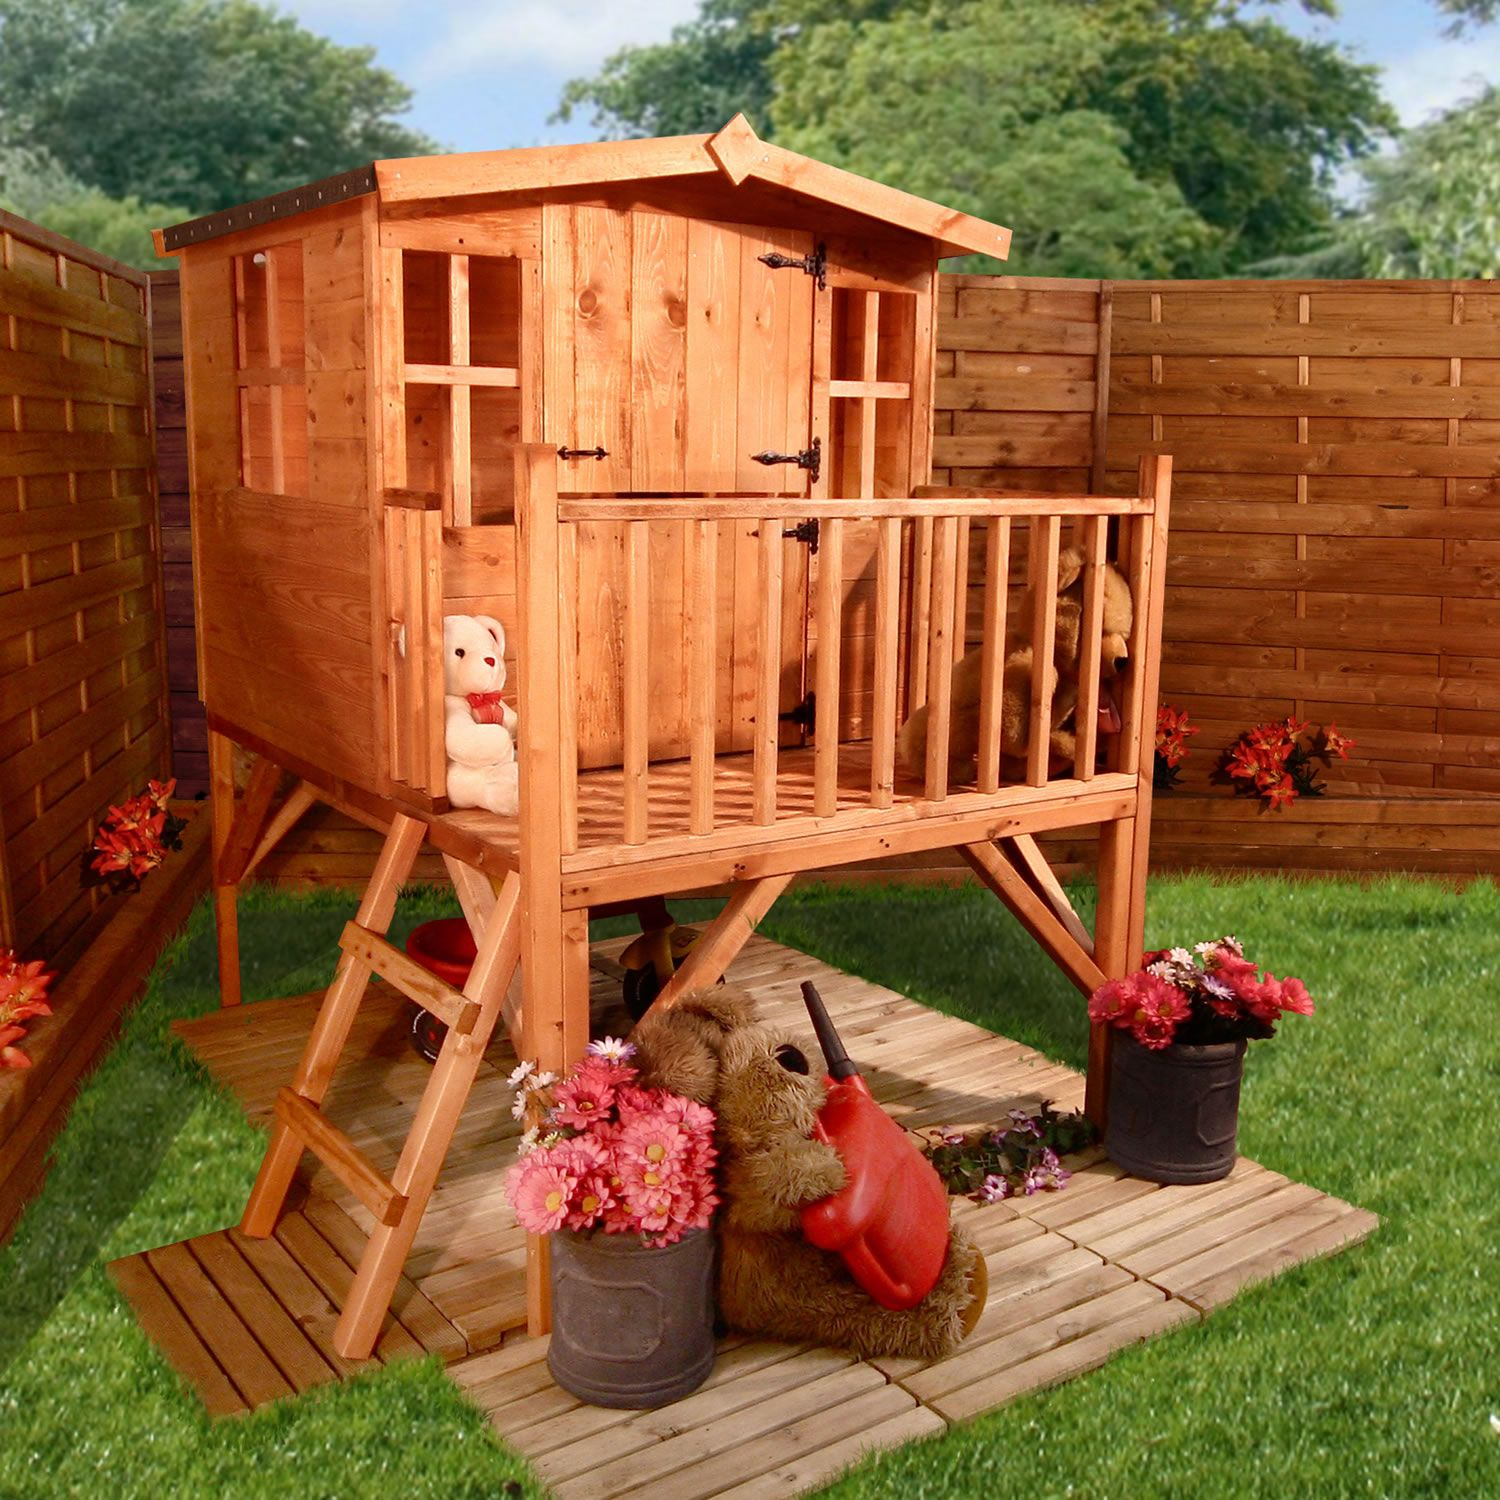 Picturesque Wooden Outdoor Playhouse Ideas Introducing Ravishing .